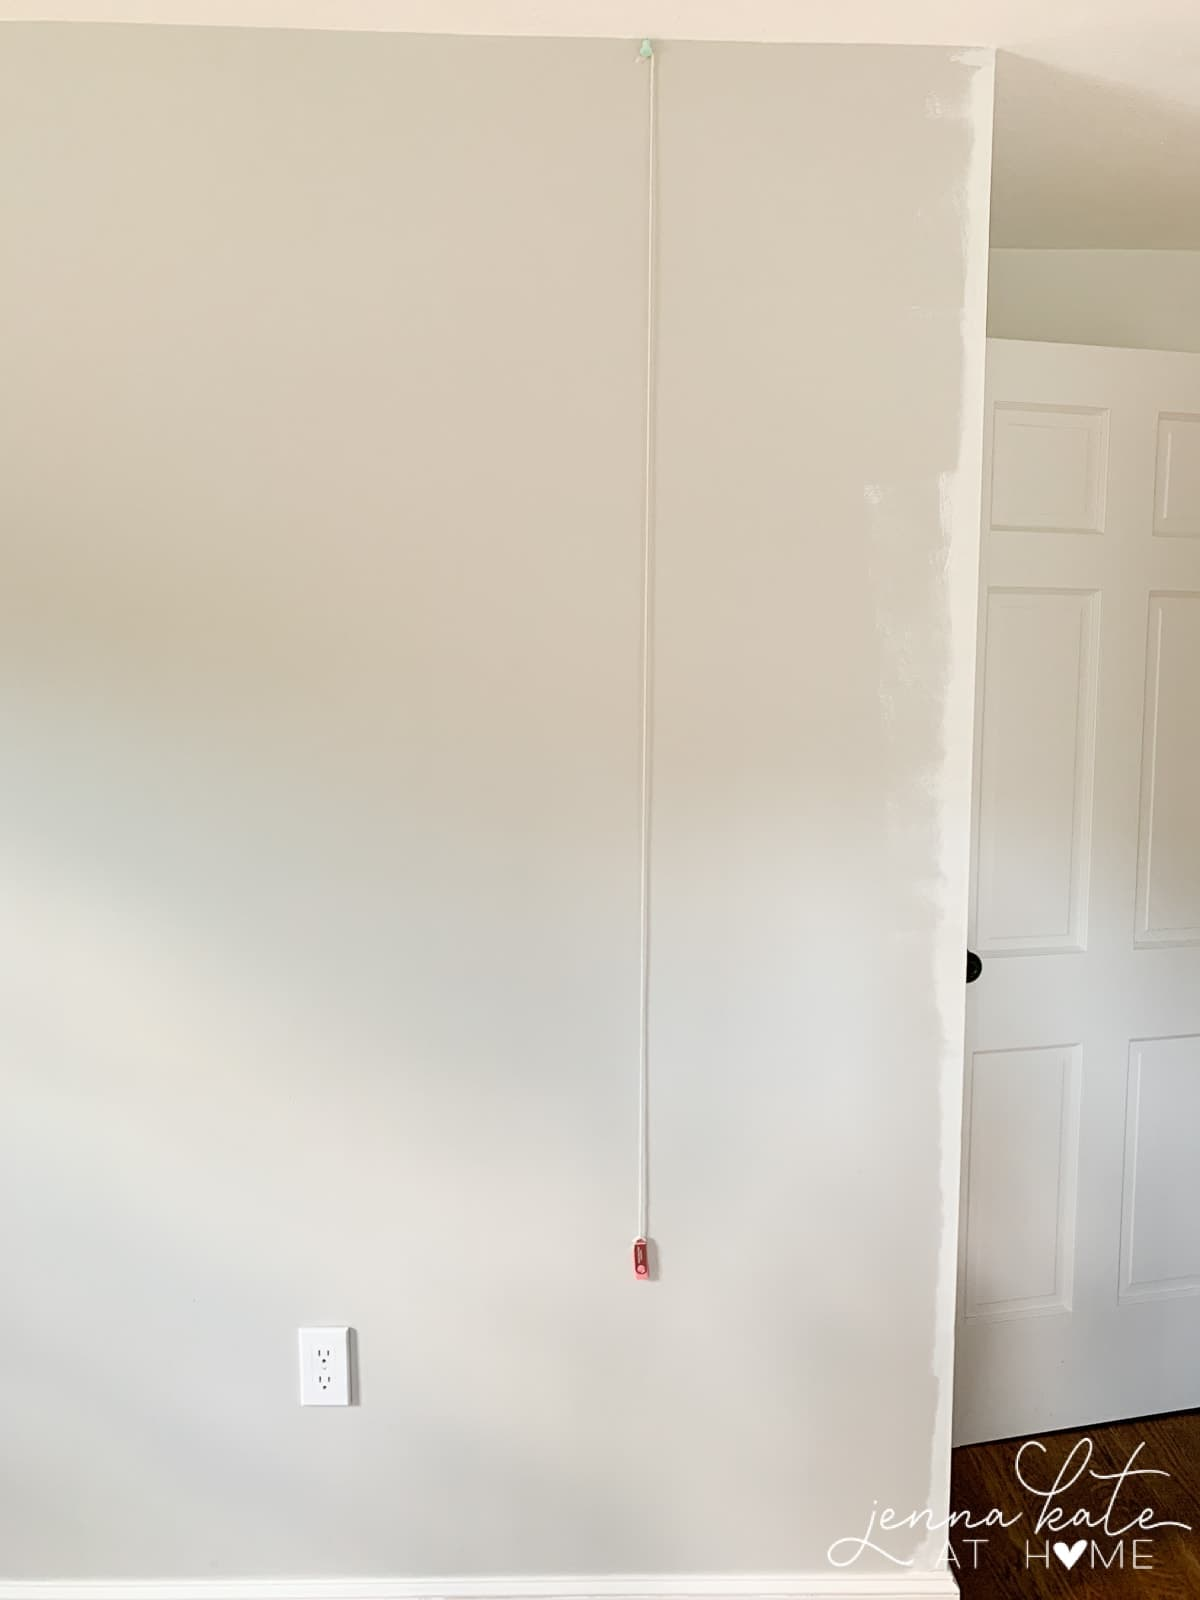 How to easily get a plumb line when installing wallpaper